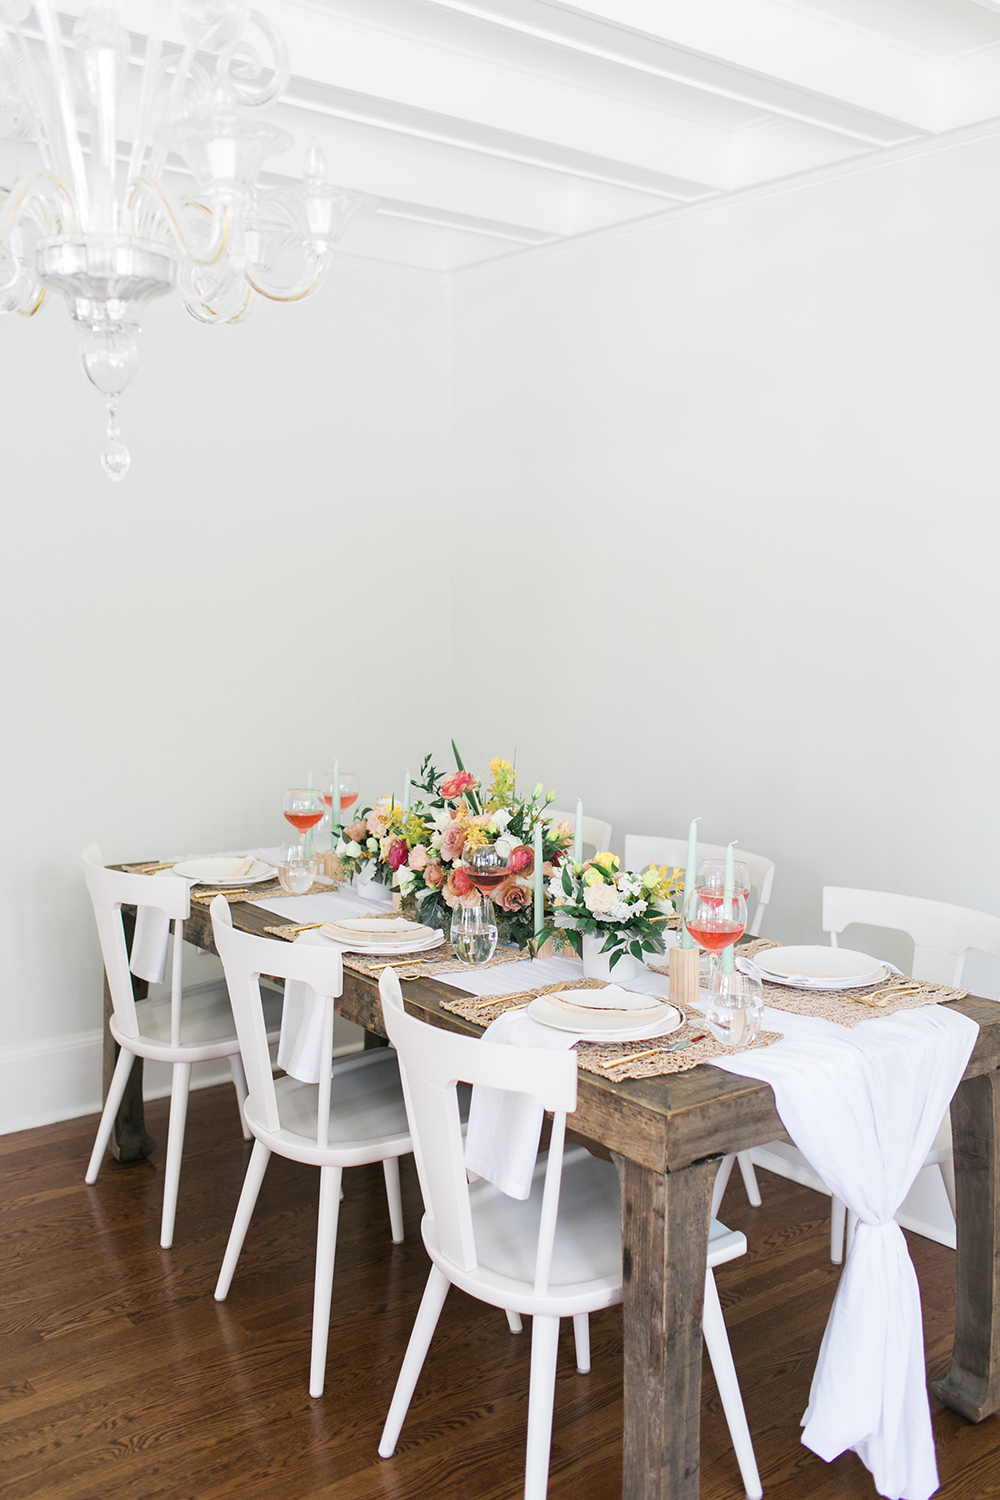 Entertain in Style with Bloomingdale's - http://ruffledblog.com/design-your-first-home-together-with-bloomingdales-registry